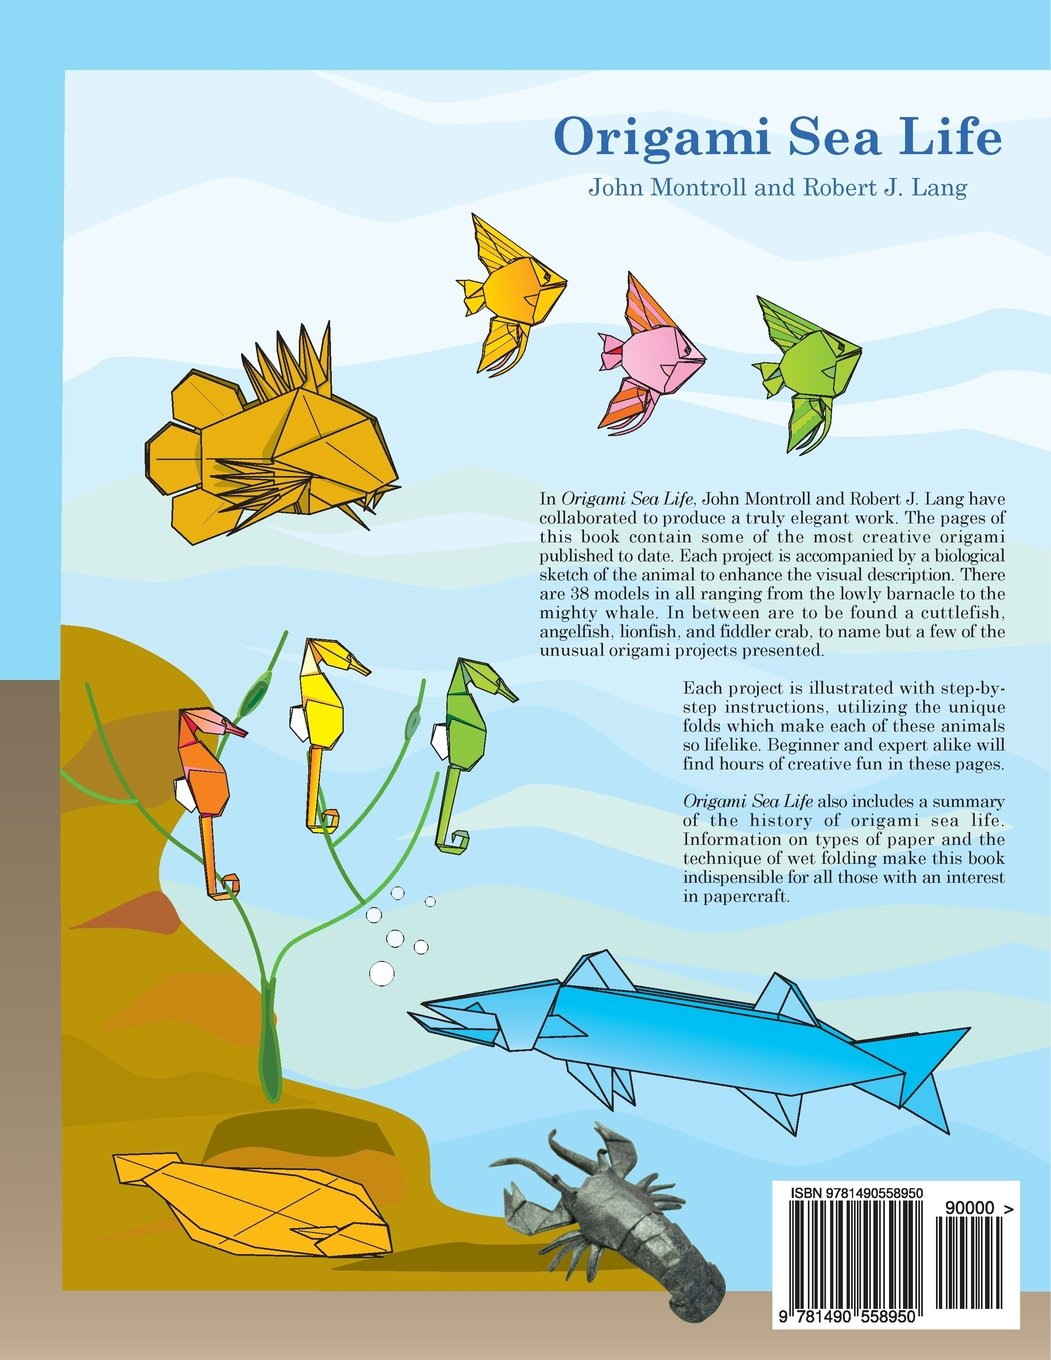 Origami sea life third edition john montroll robert j lang origami sea life third edition john montroll robert j lang 9781490558950 amazon books jeuxipadfo Image collections